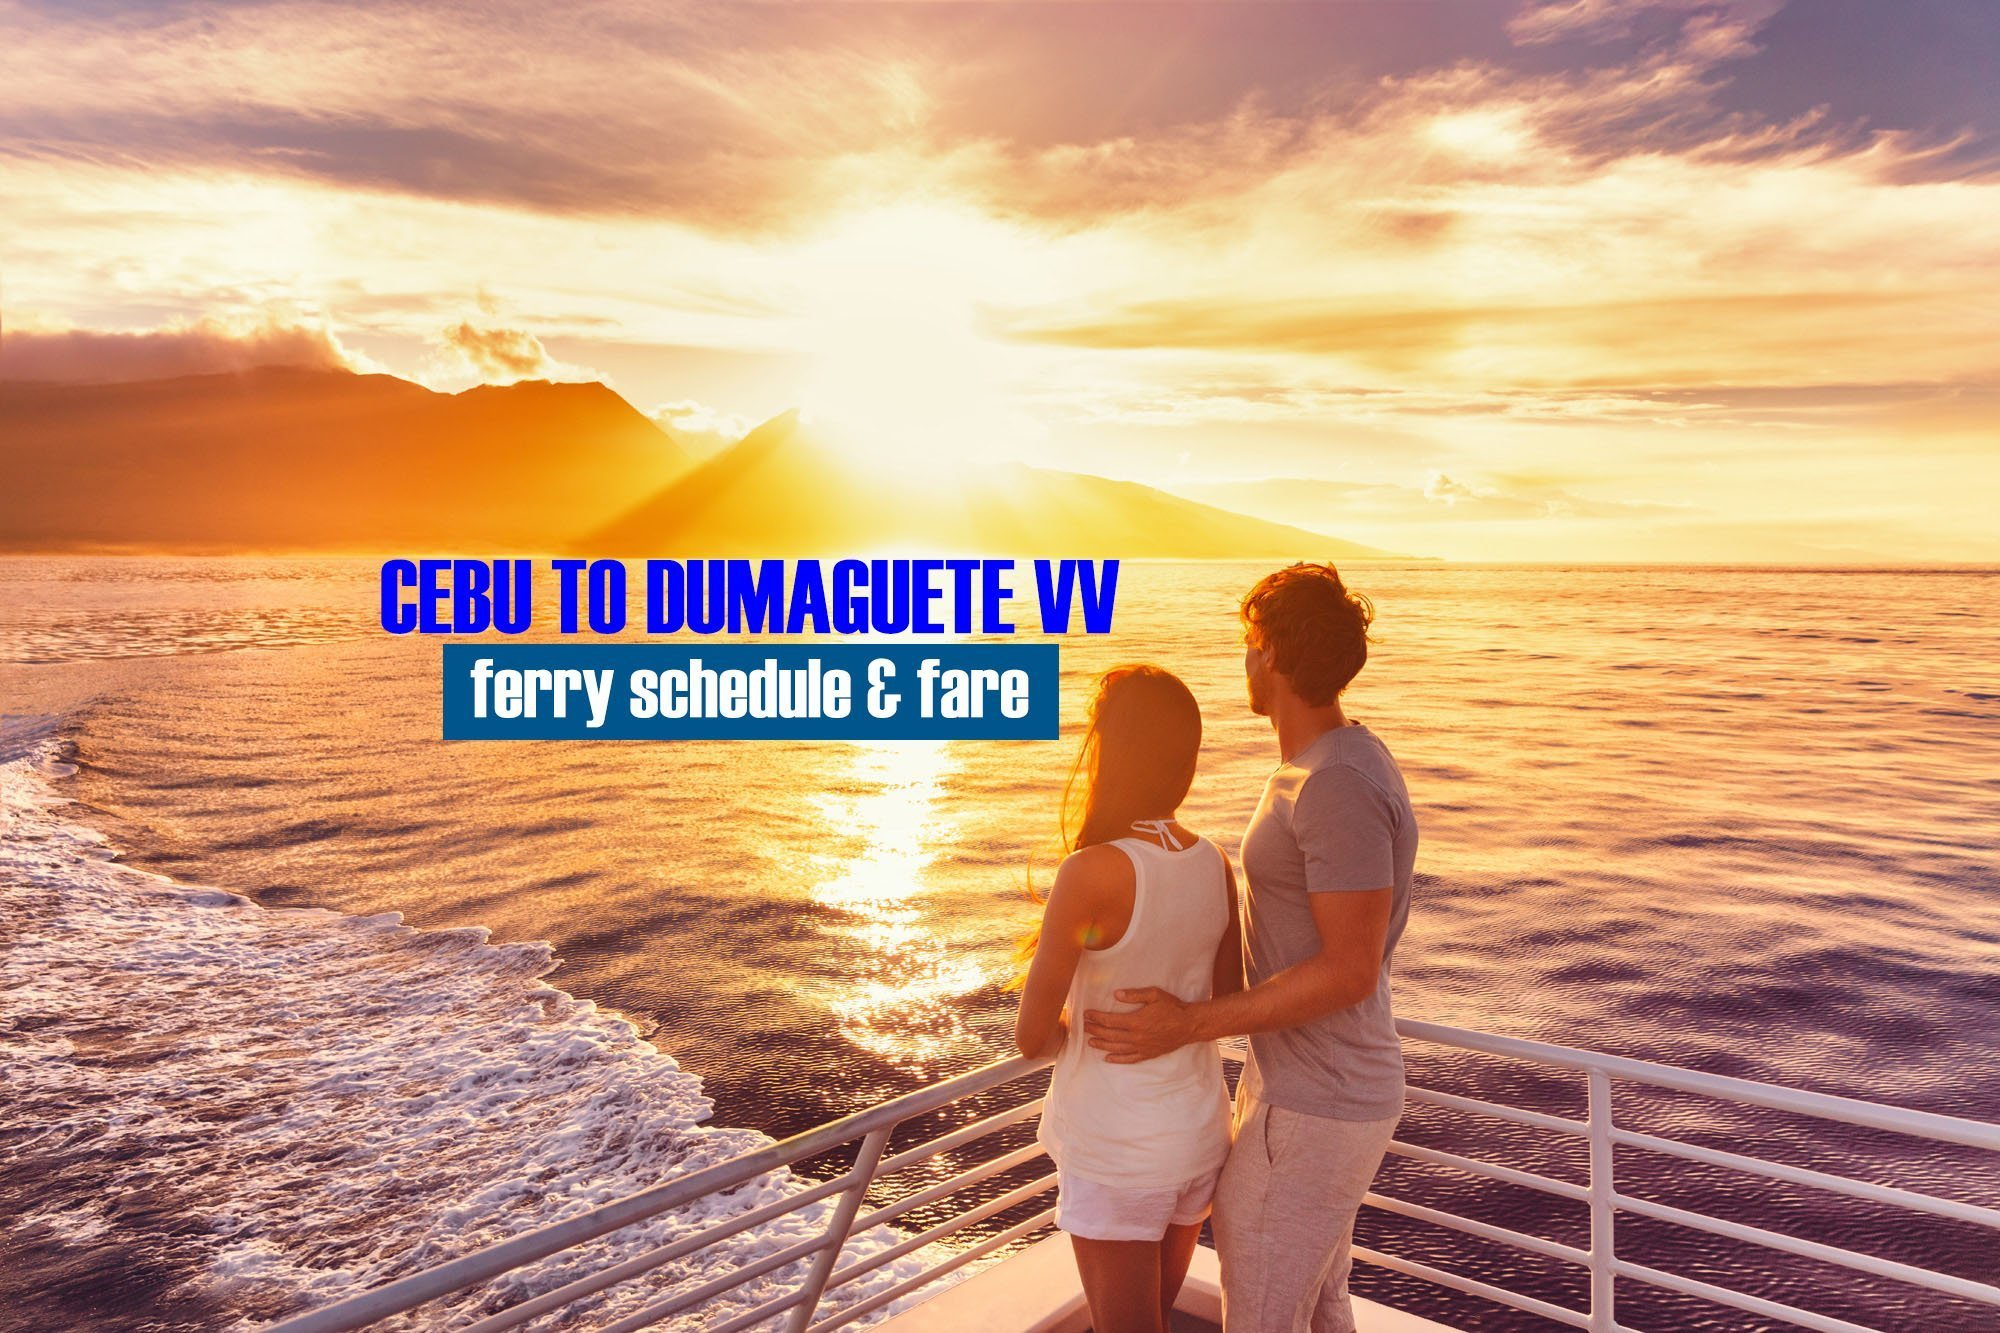 Cebu to Dumaguete: 2020 Ferry Schedule and Fare Rates